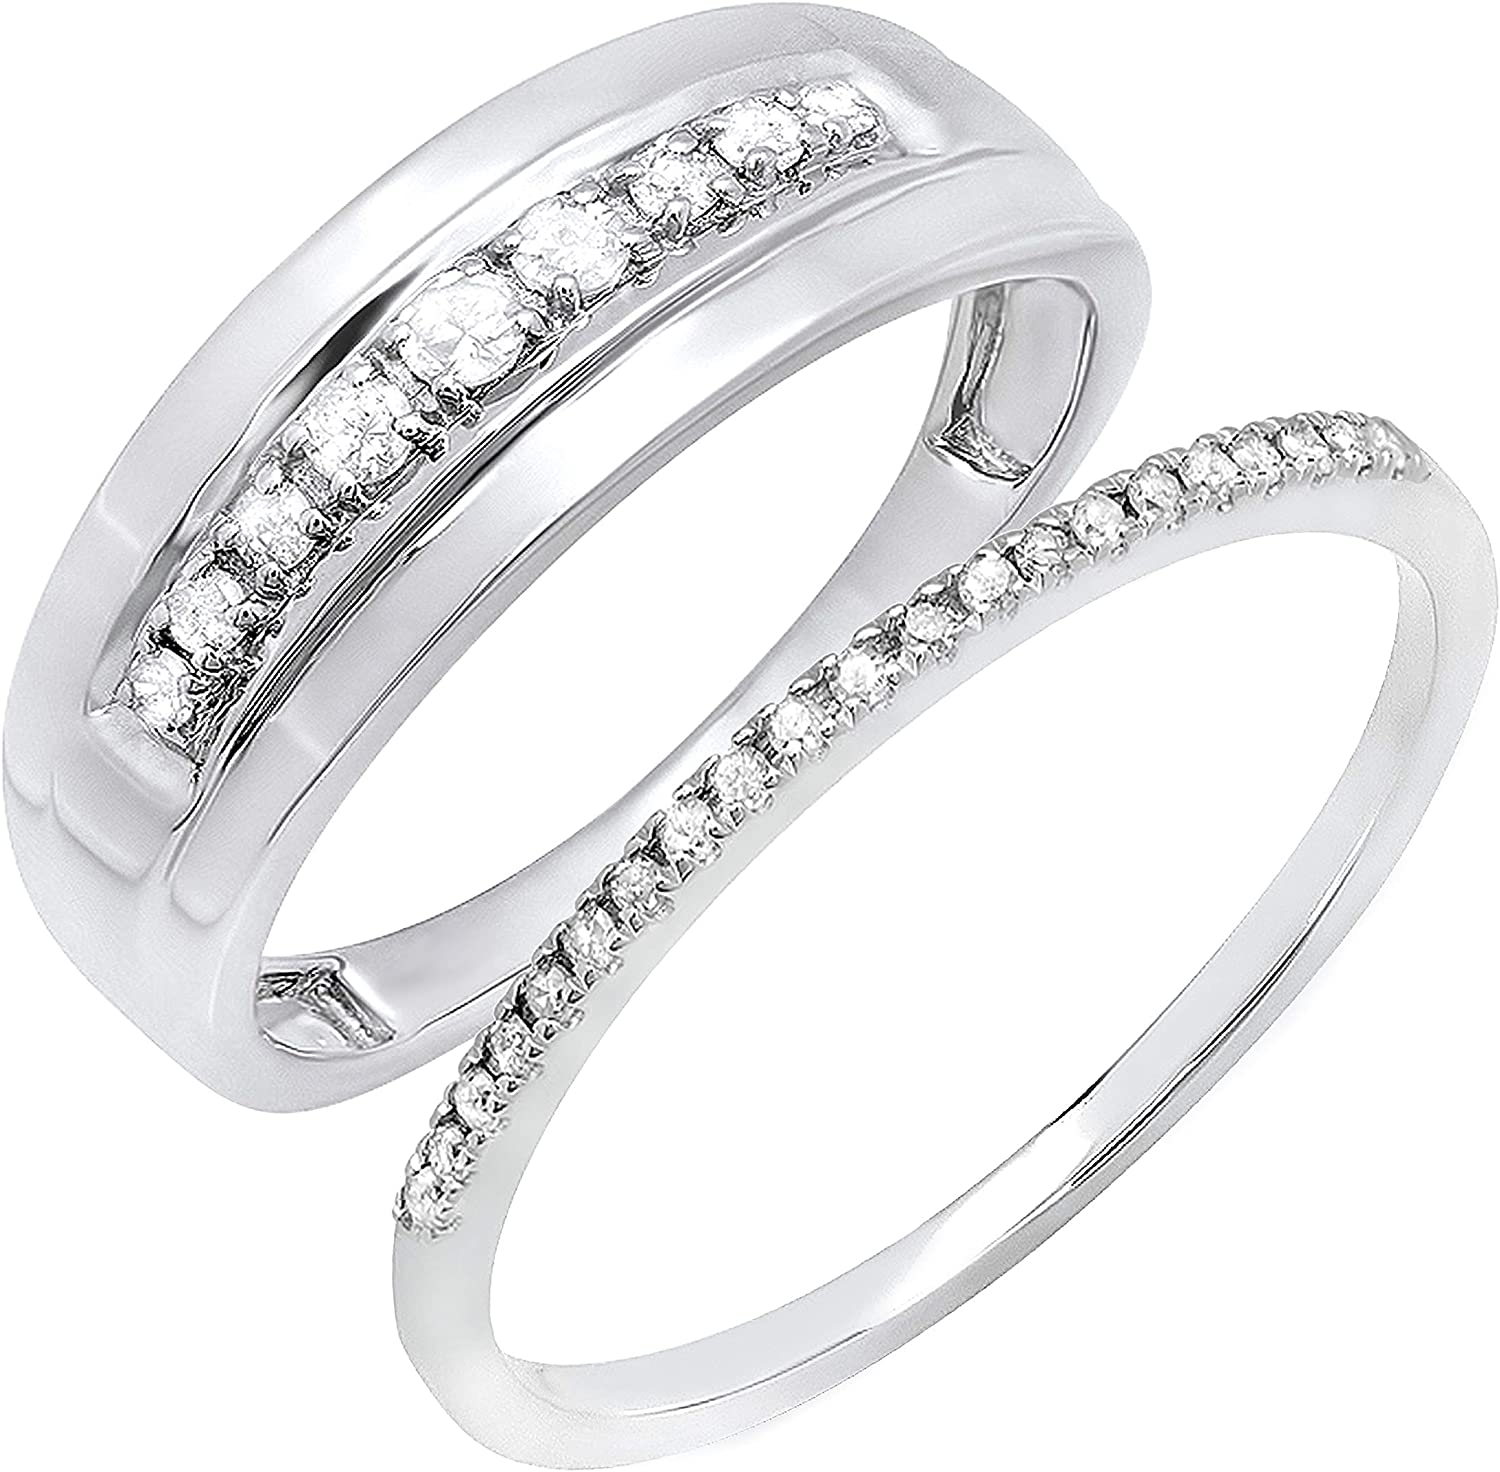 Dazzlingrock Collection 0.31 Carat (ctw) Round White Diamond Couple Rings for His & Her Promise Wedding Band Set 1/3 CT, 10K White Gold